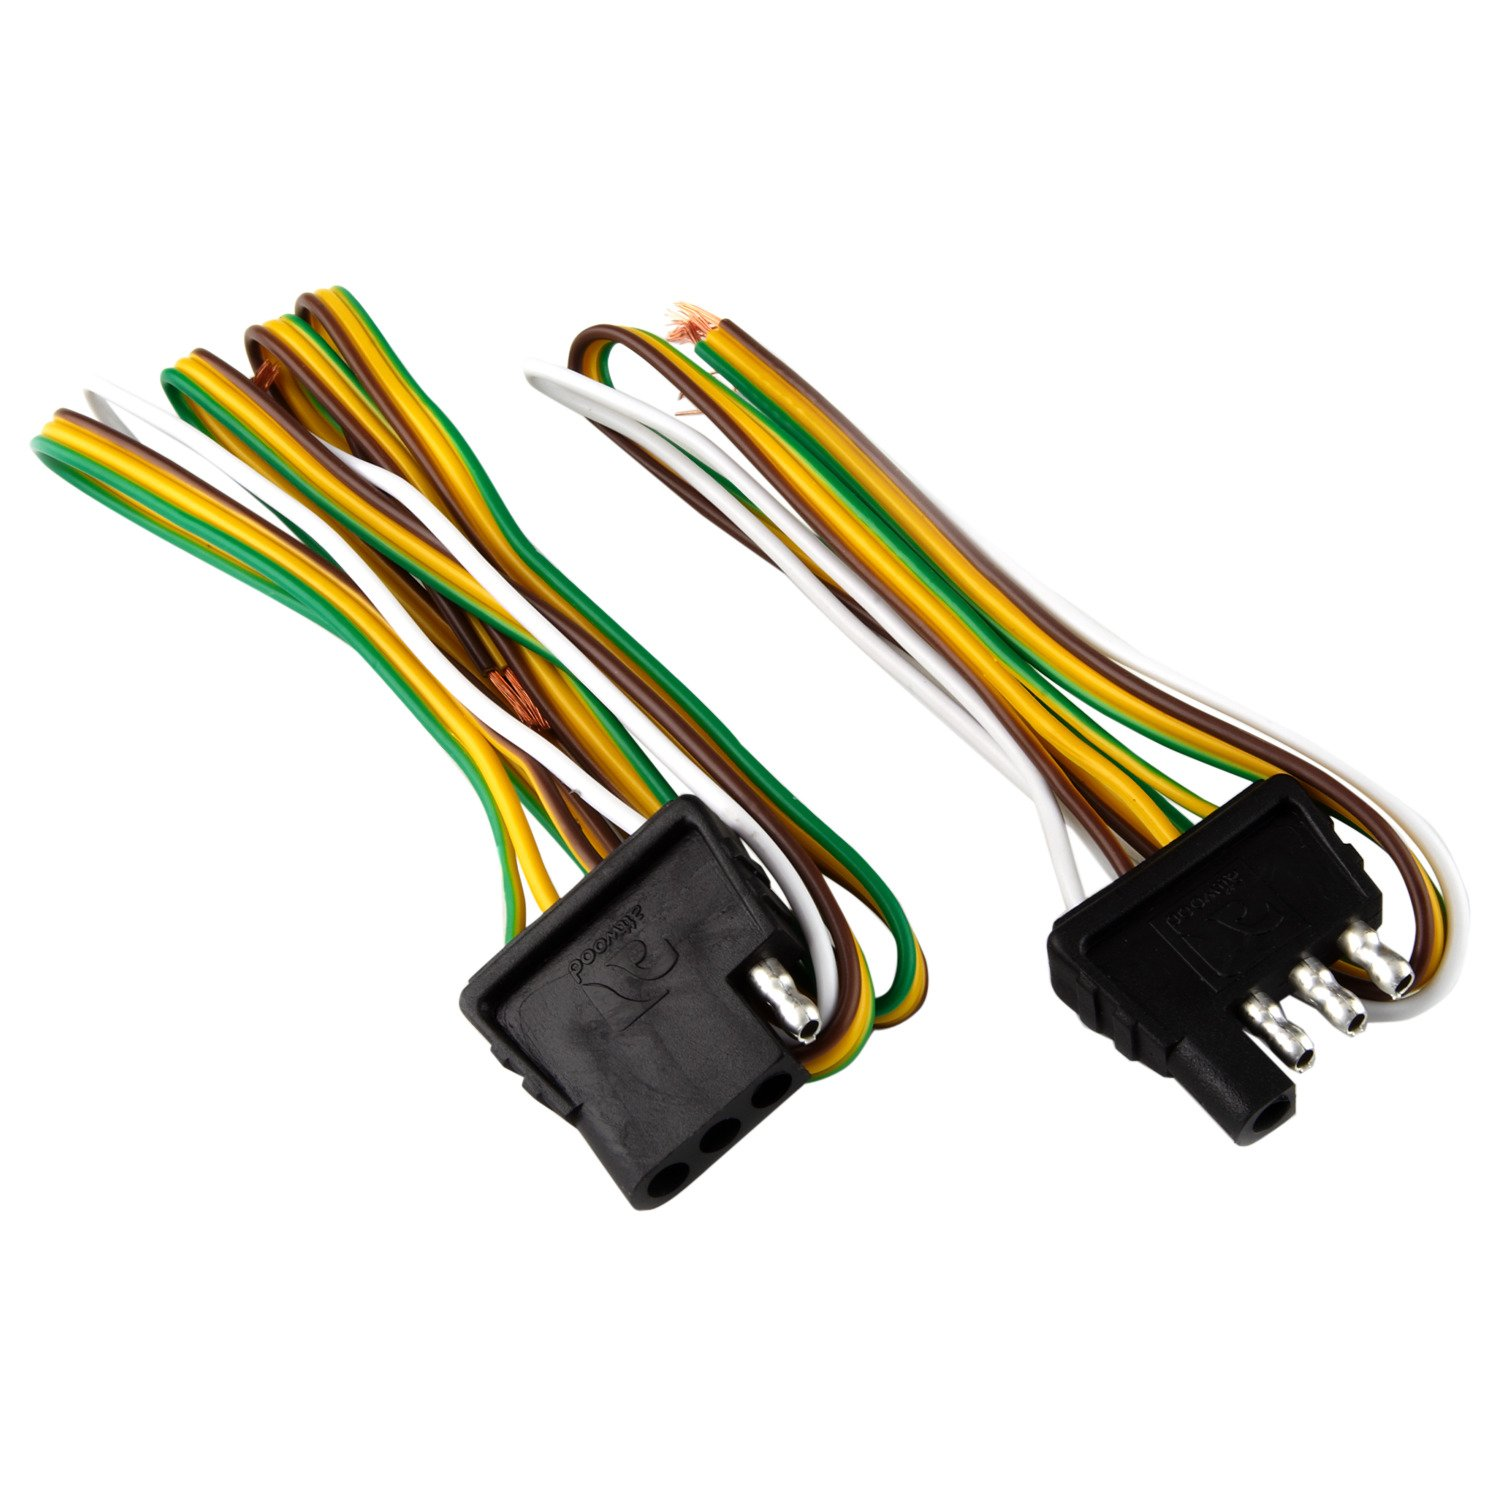 hight resolution of attwood 4 way flat wiring harness kit for vehicles and trailers 4 way flat connector for ford 4 way wiring harness